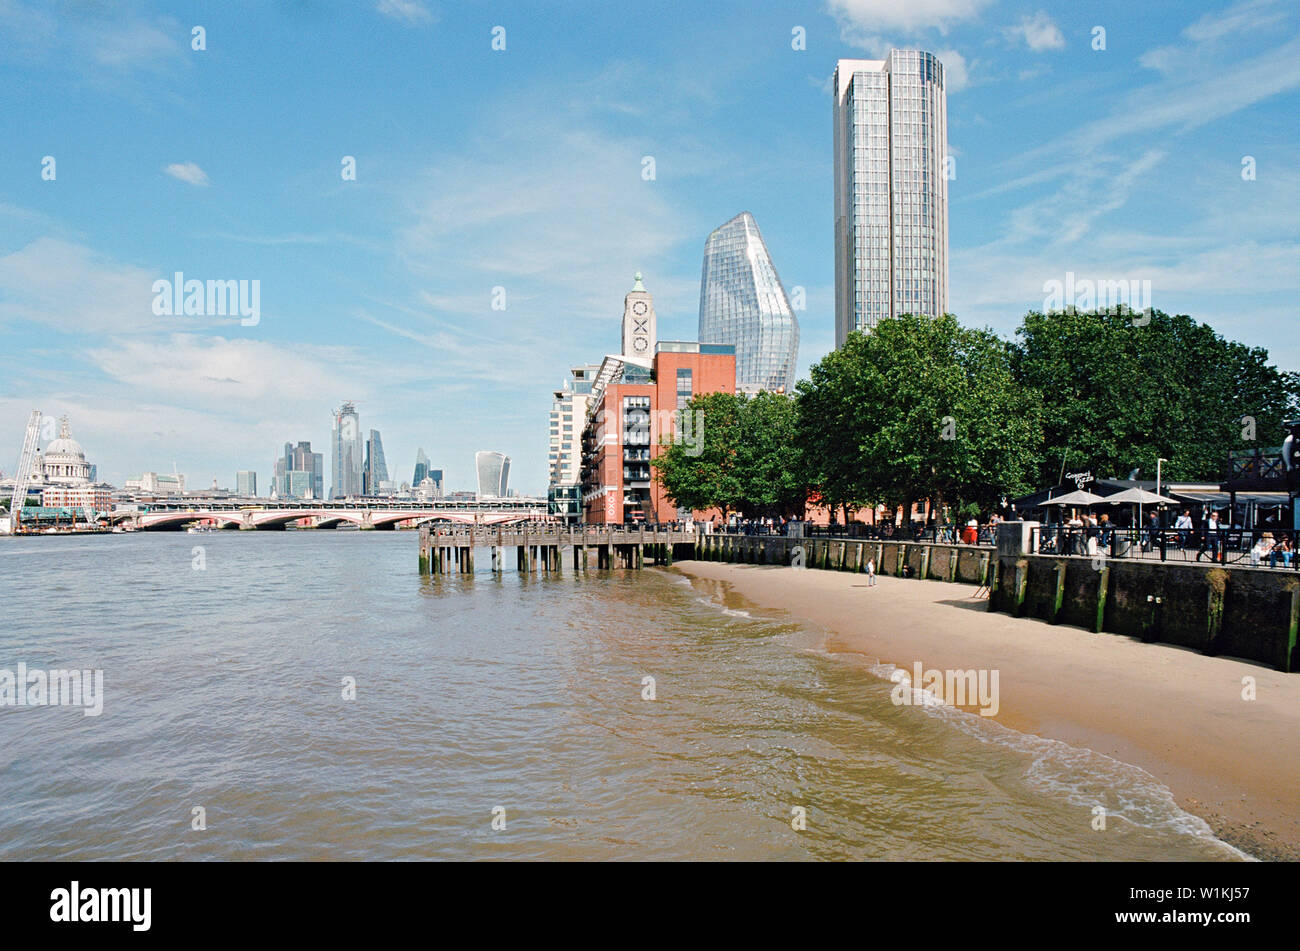 The South Bank of the River Thames, Central London, looking East towards the Oxo Tower, the South Bank Tower, One Blackfriars and the city Stock Photo